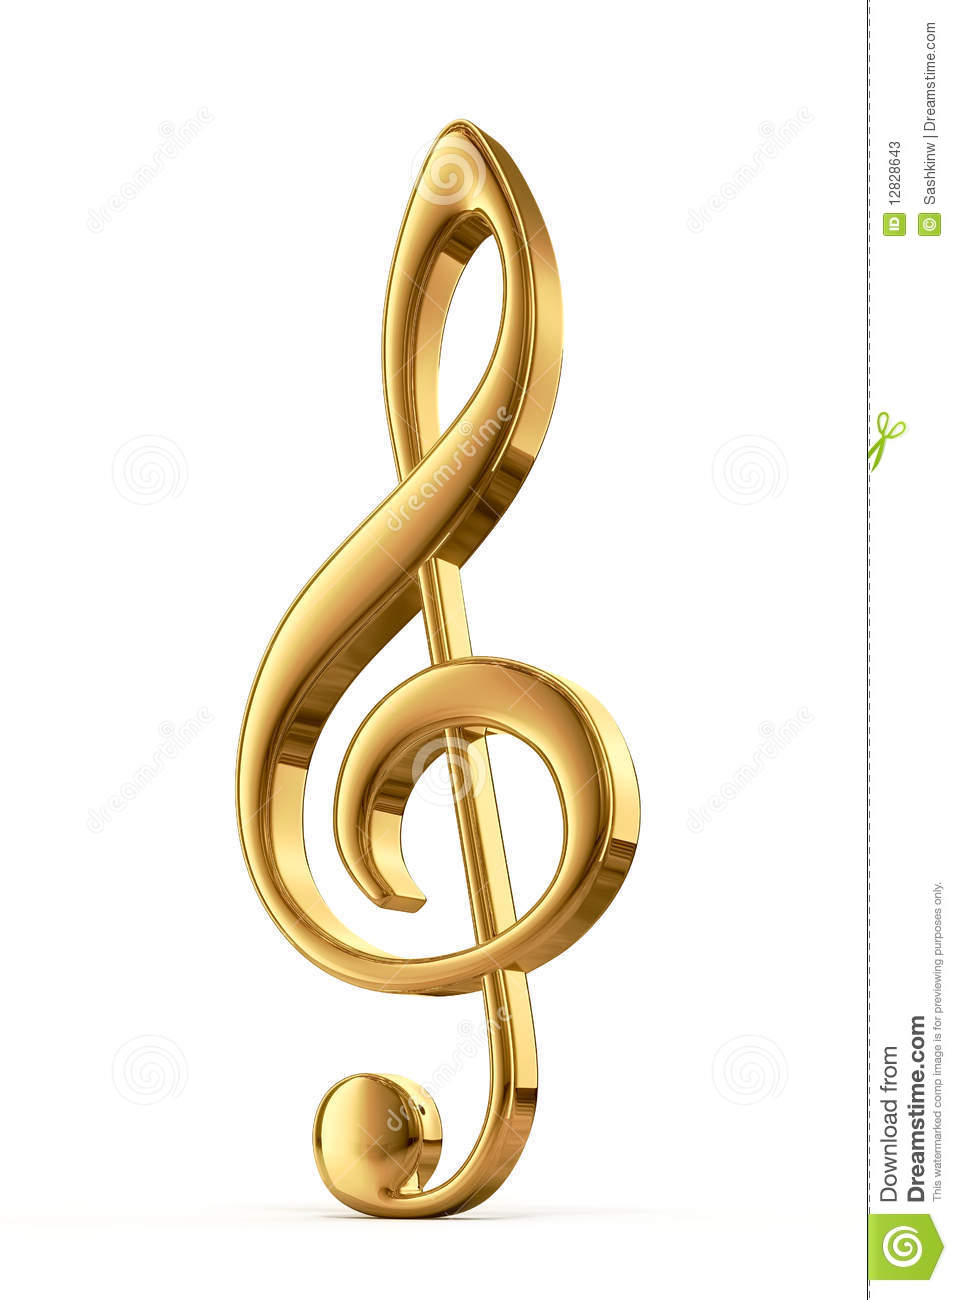 Golden Treble Clef Stock Photos - Image: 12828643